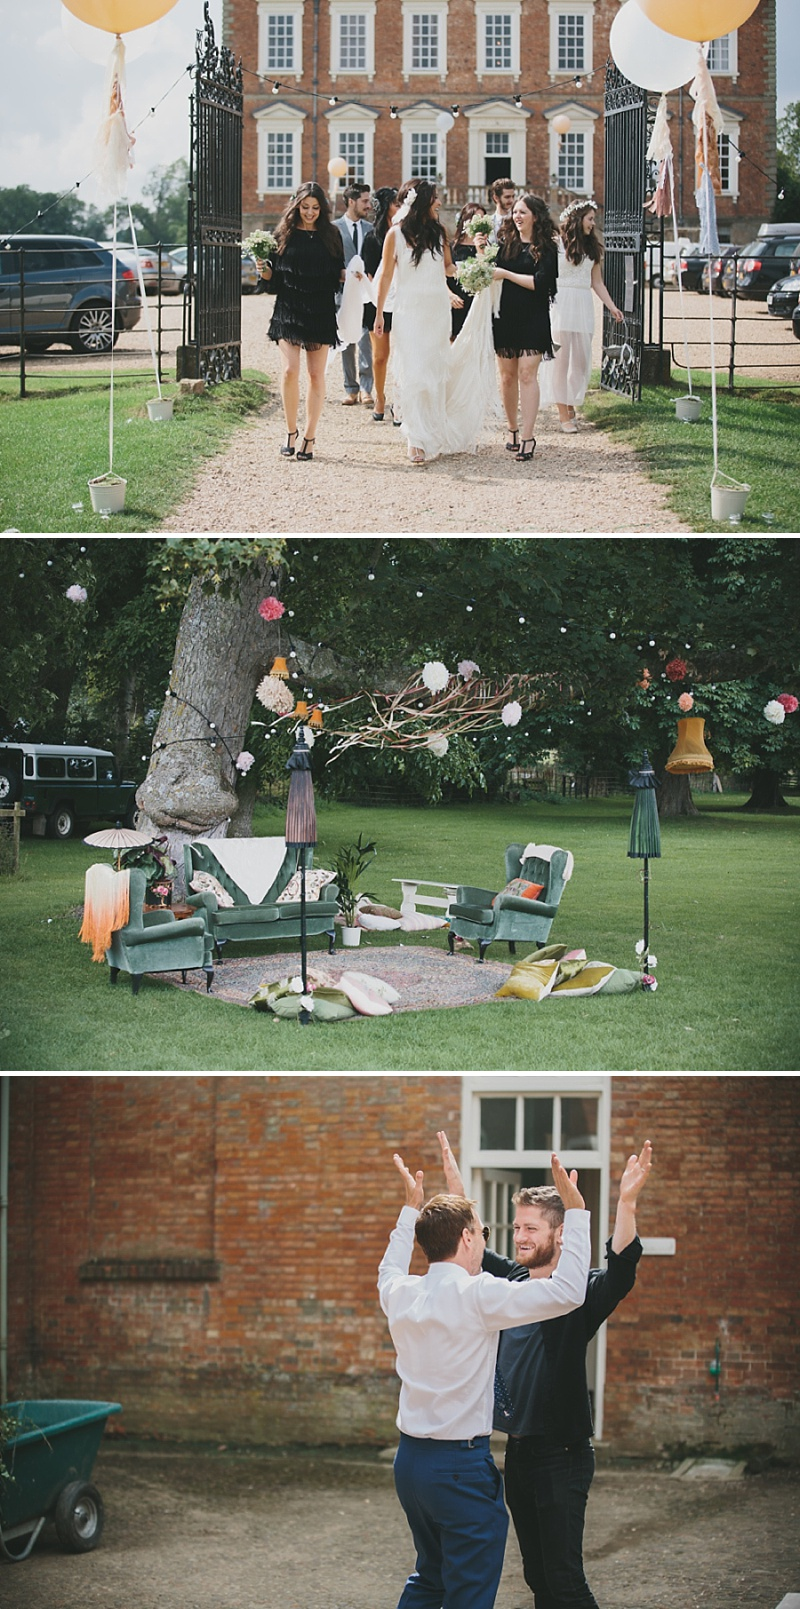 A Great Gatsby Woodstock themed wedding at Stanford Hall with a bridal gown from Blackburn Bridal Couture 0032 Woodstock Meets The Great Gatsby.